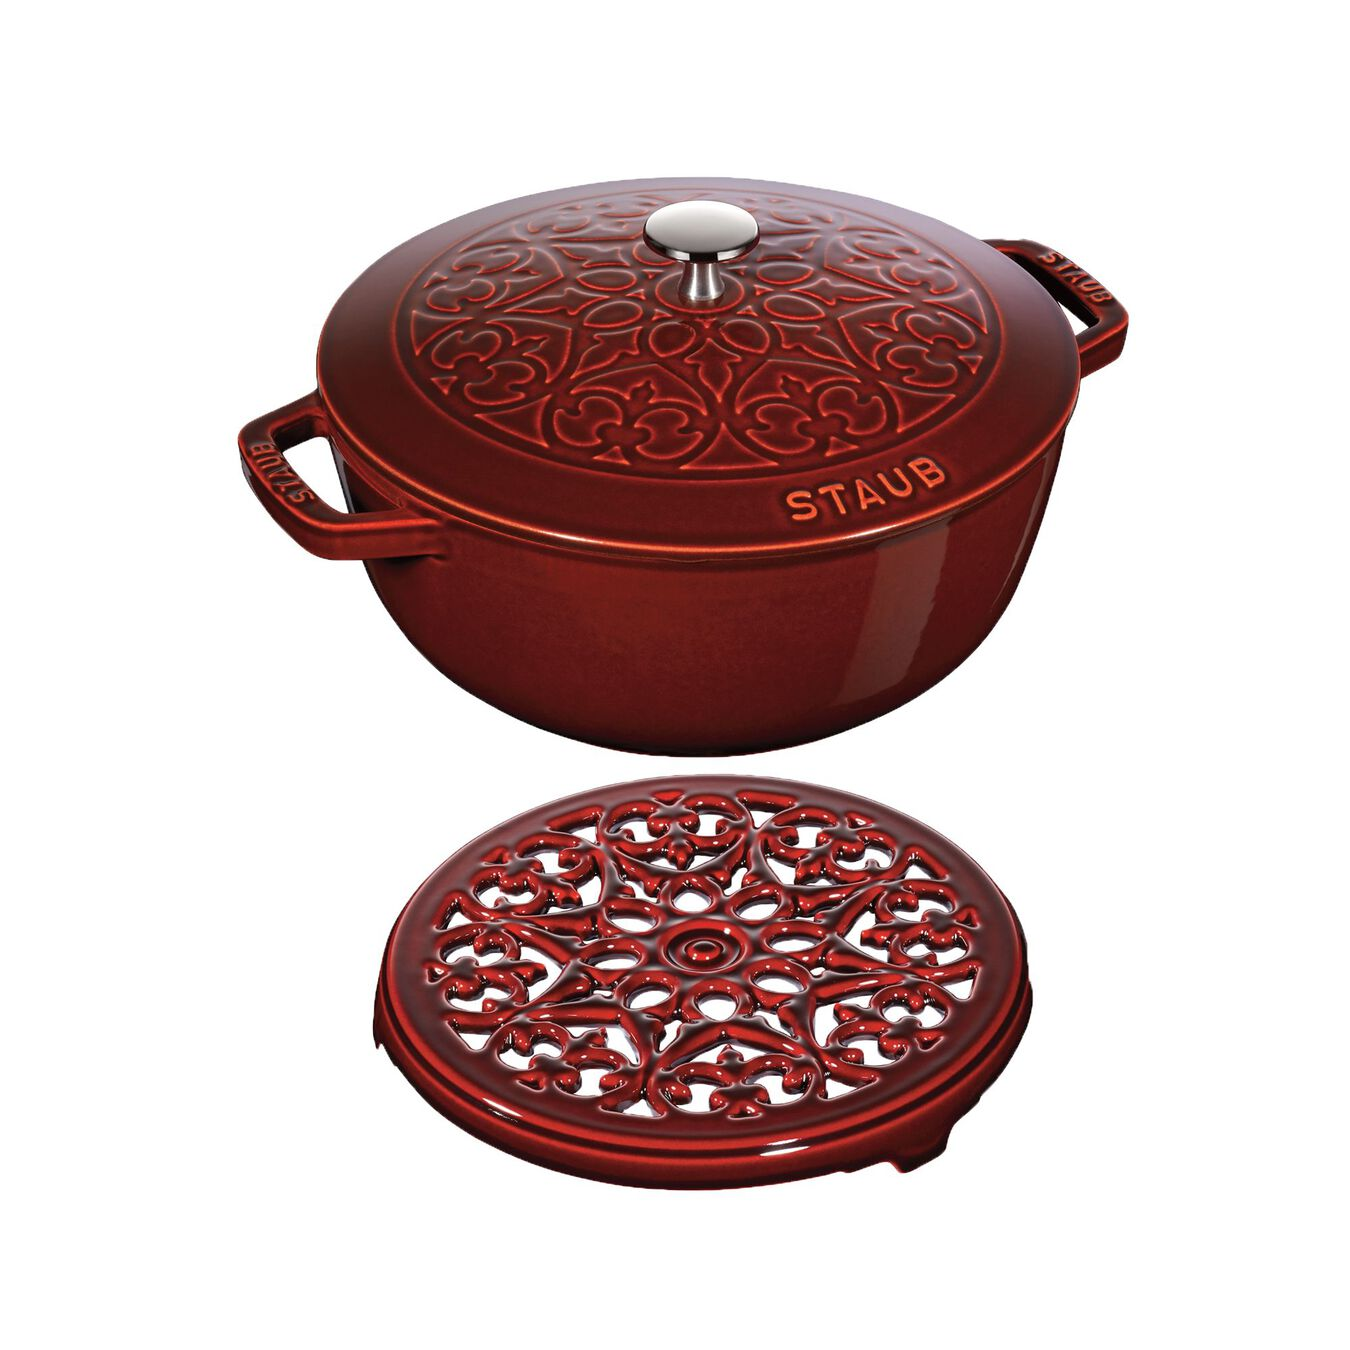 Ensemble de casseroles, 2-pcs | round | Cast iron | Grenadine-Red,,large 1